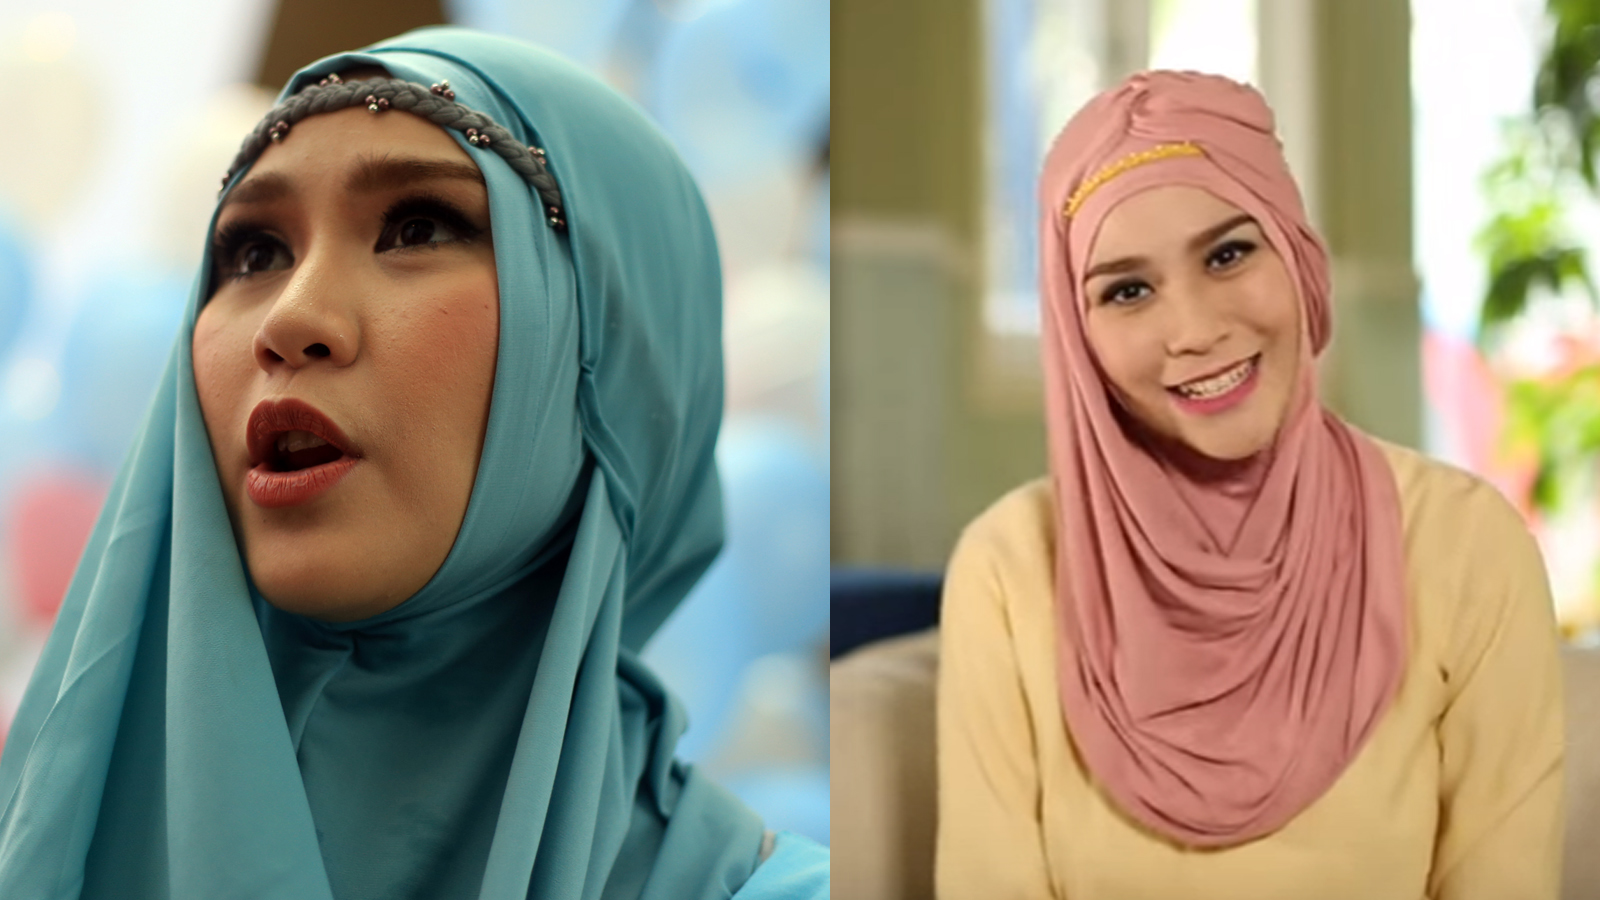 Tutorial Hijab Simple Trendy Segi Empat Ala Zaskia Adya Meca 2016